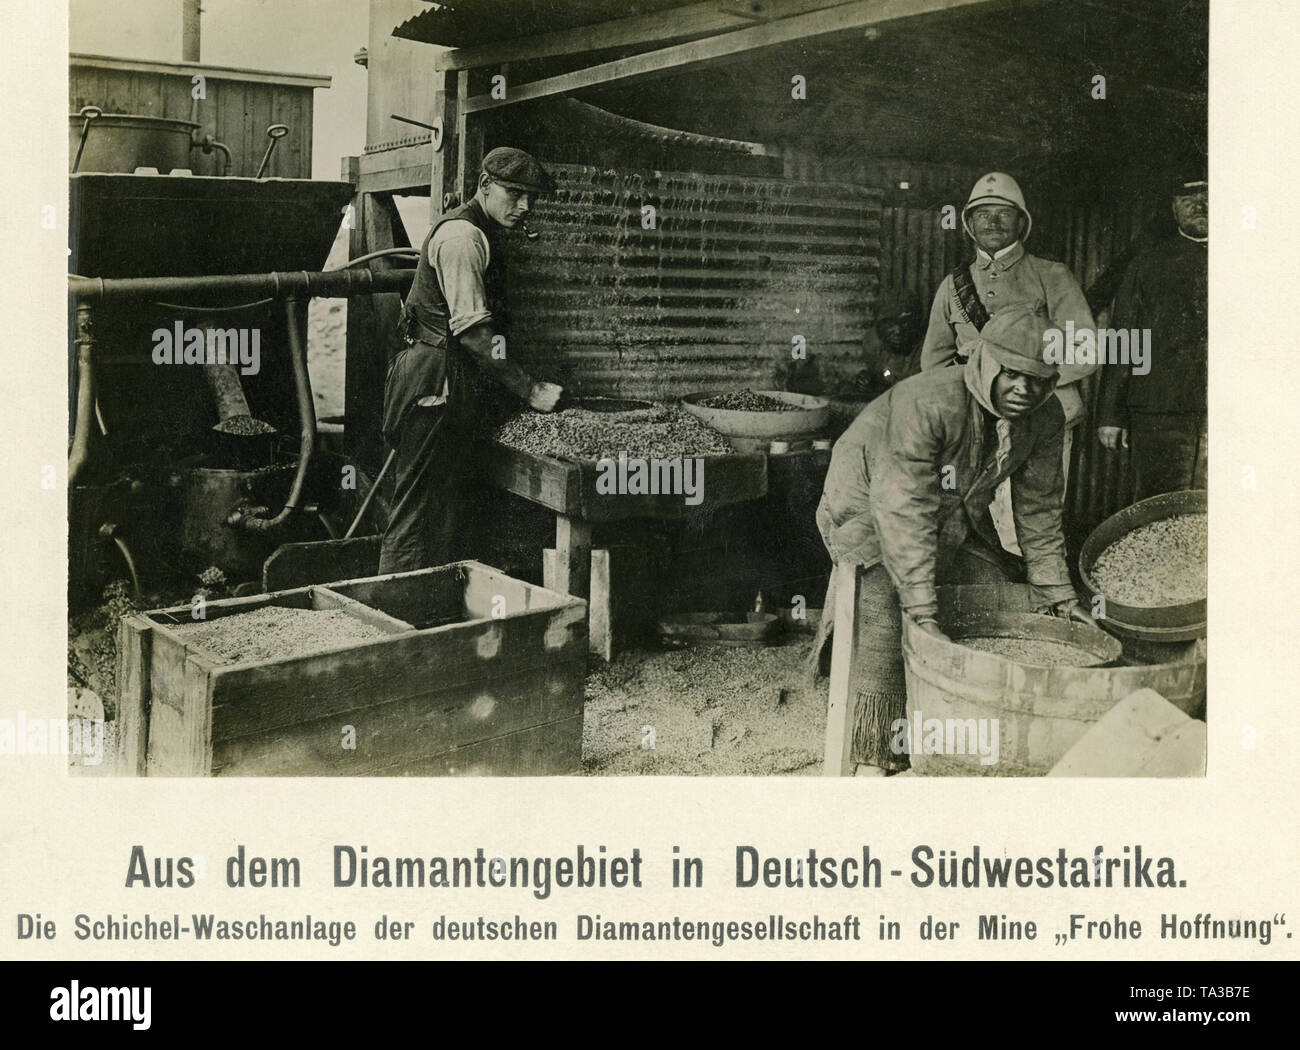 The photo shows workers panning for diamonds in the 'Frohe Hoffnung' mine of the Deutsche Diamantengesellschaft ('German Diamond Company'). - Stock Image